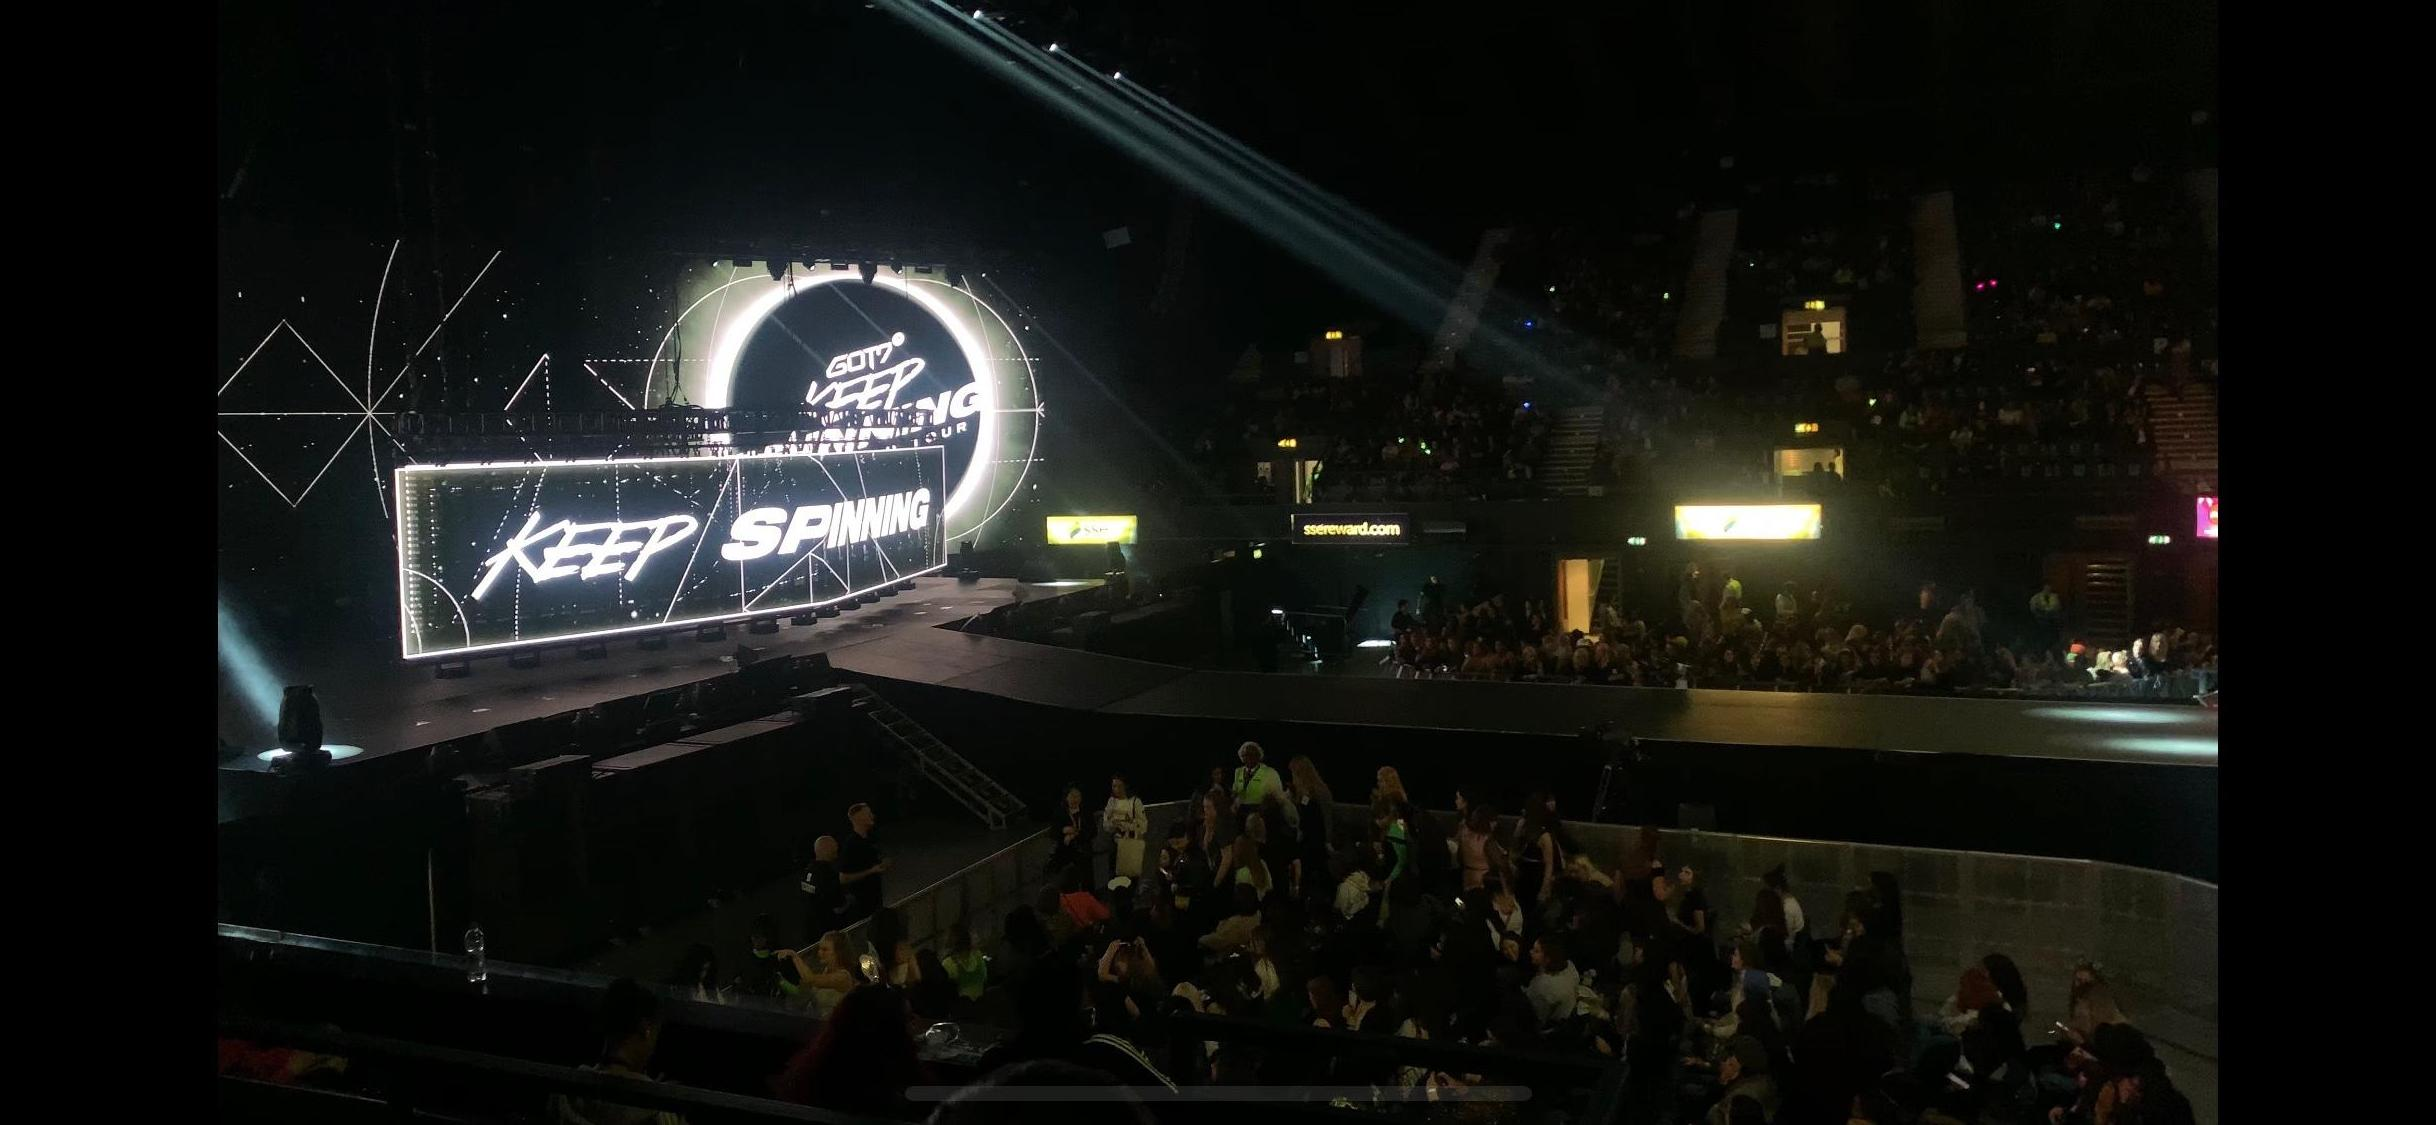 SSE Arena, Wembley Section S8 Row E